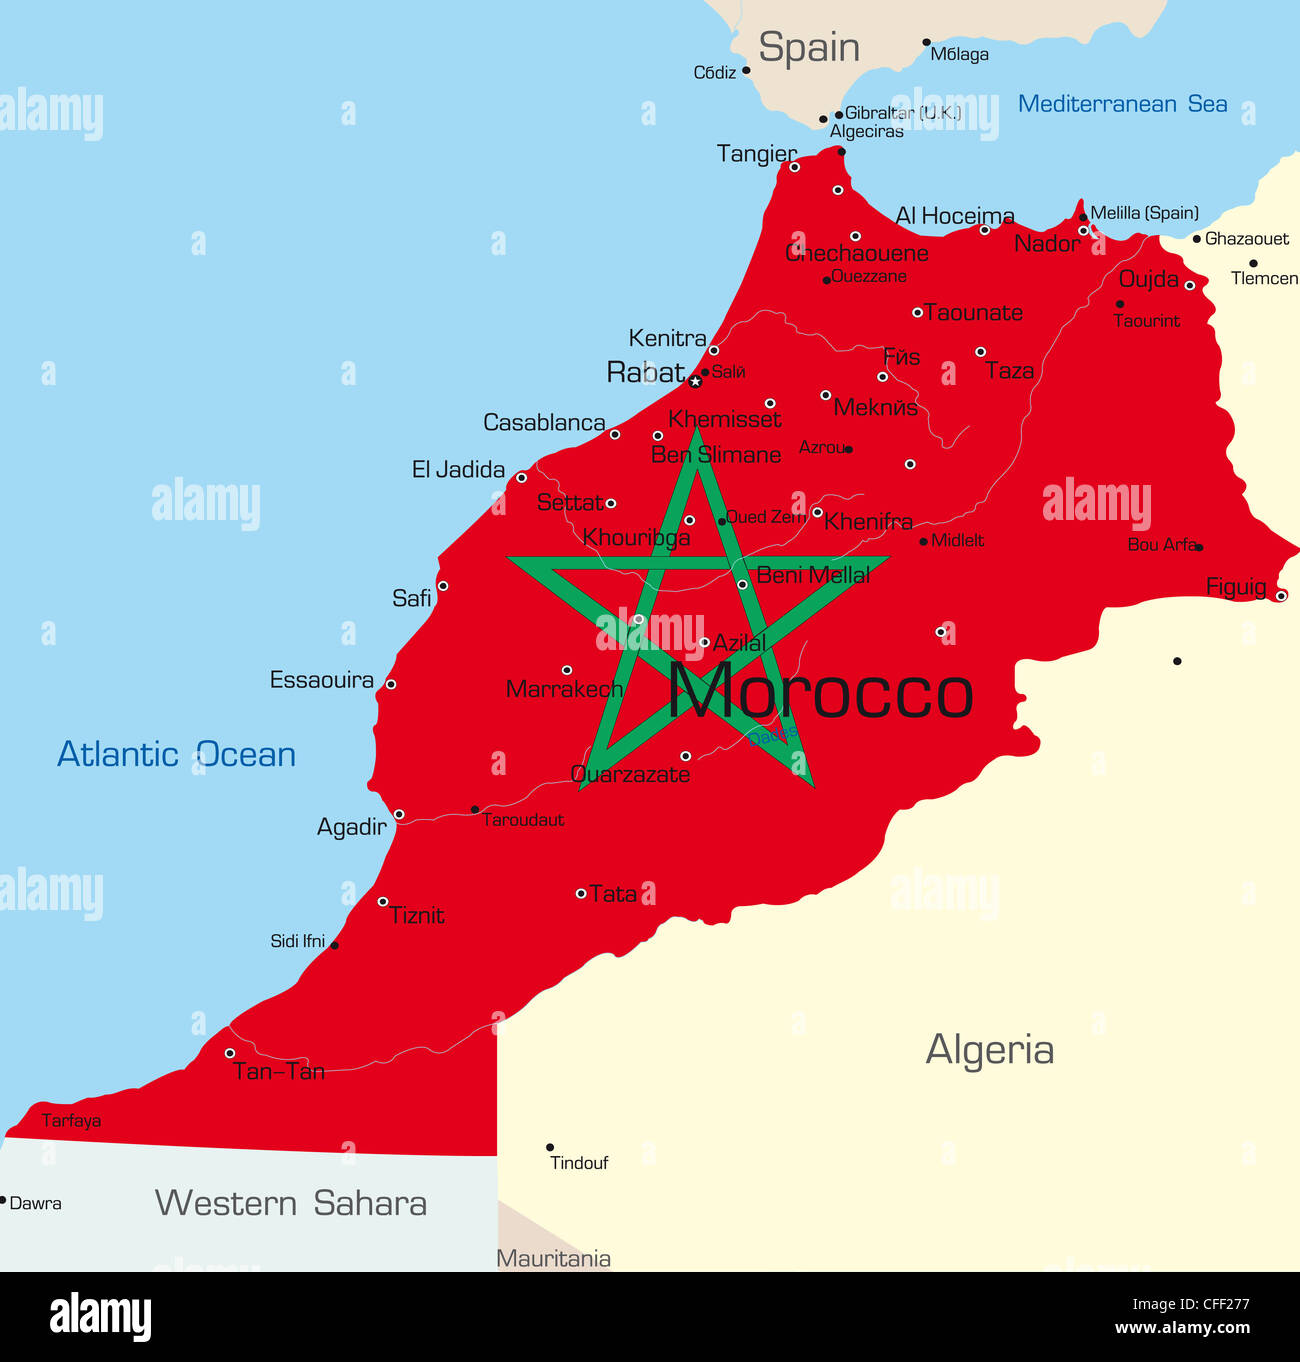 Abstract vector color map of Morocco country colored by national